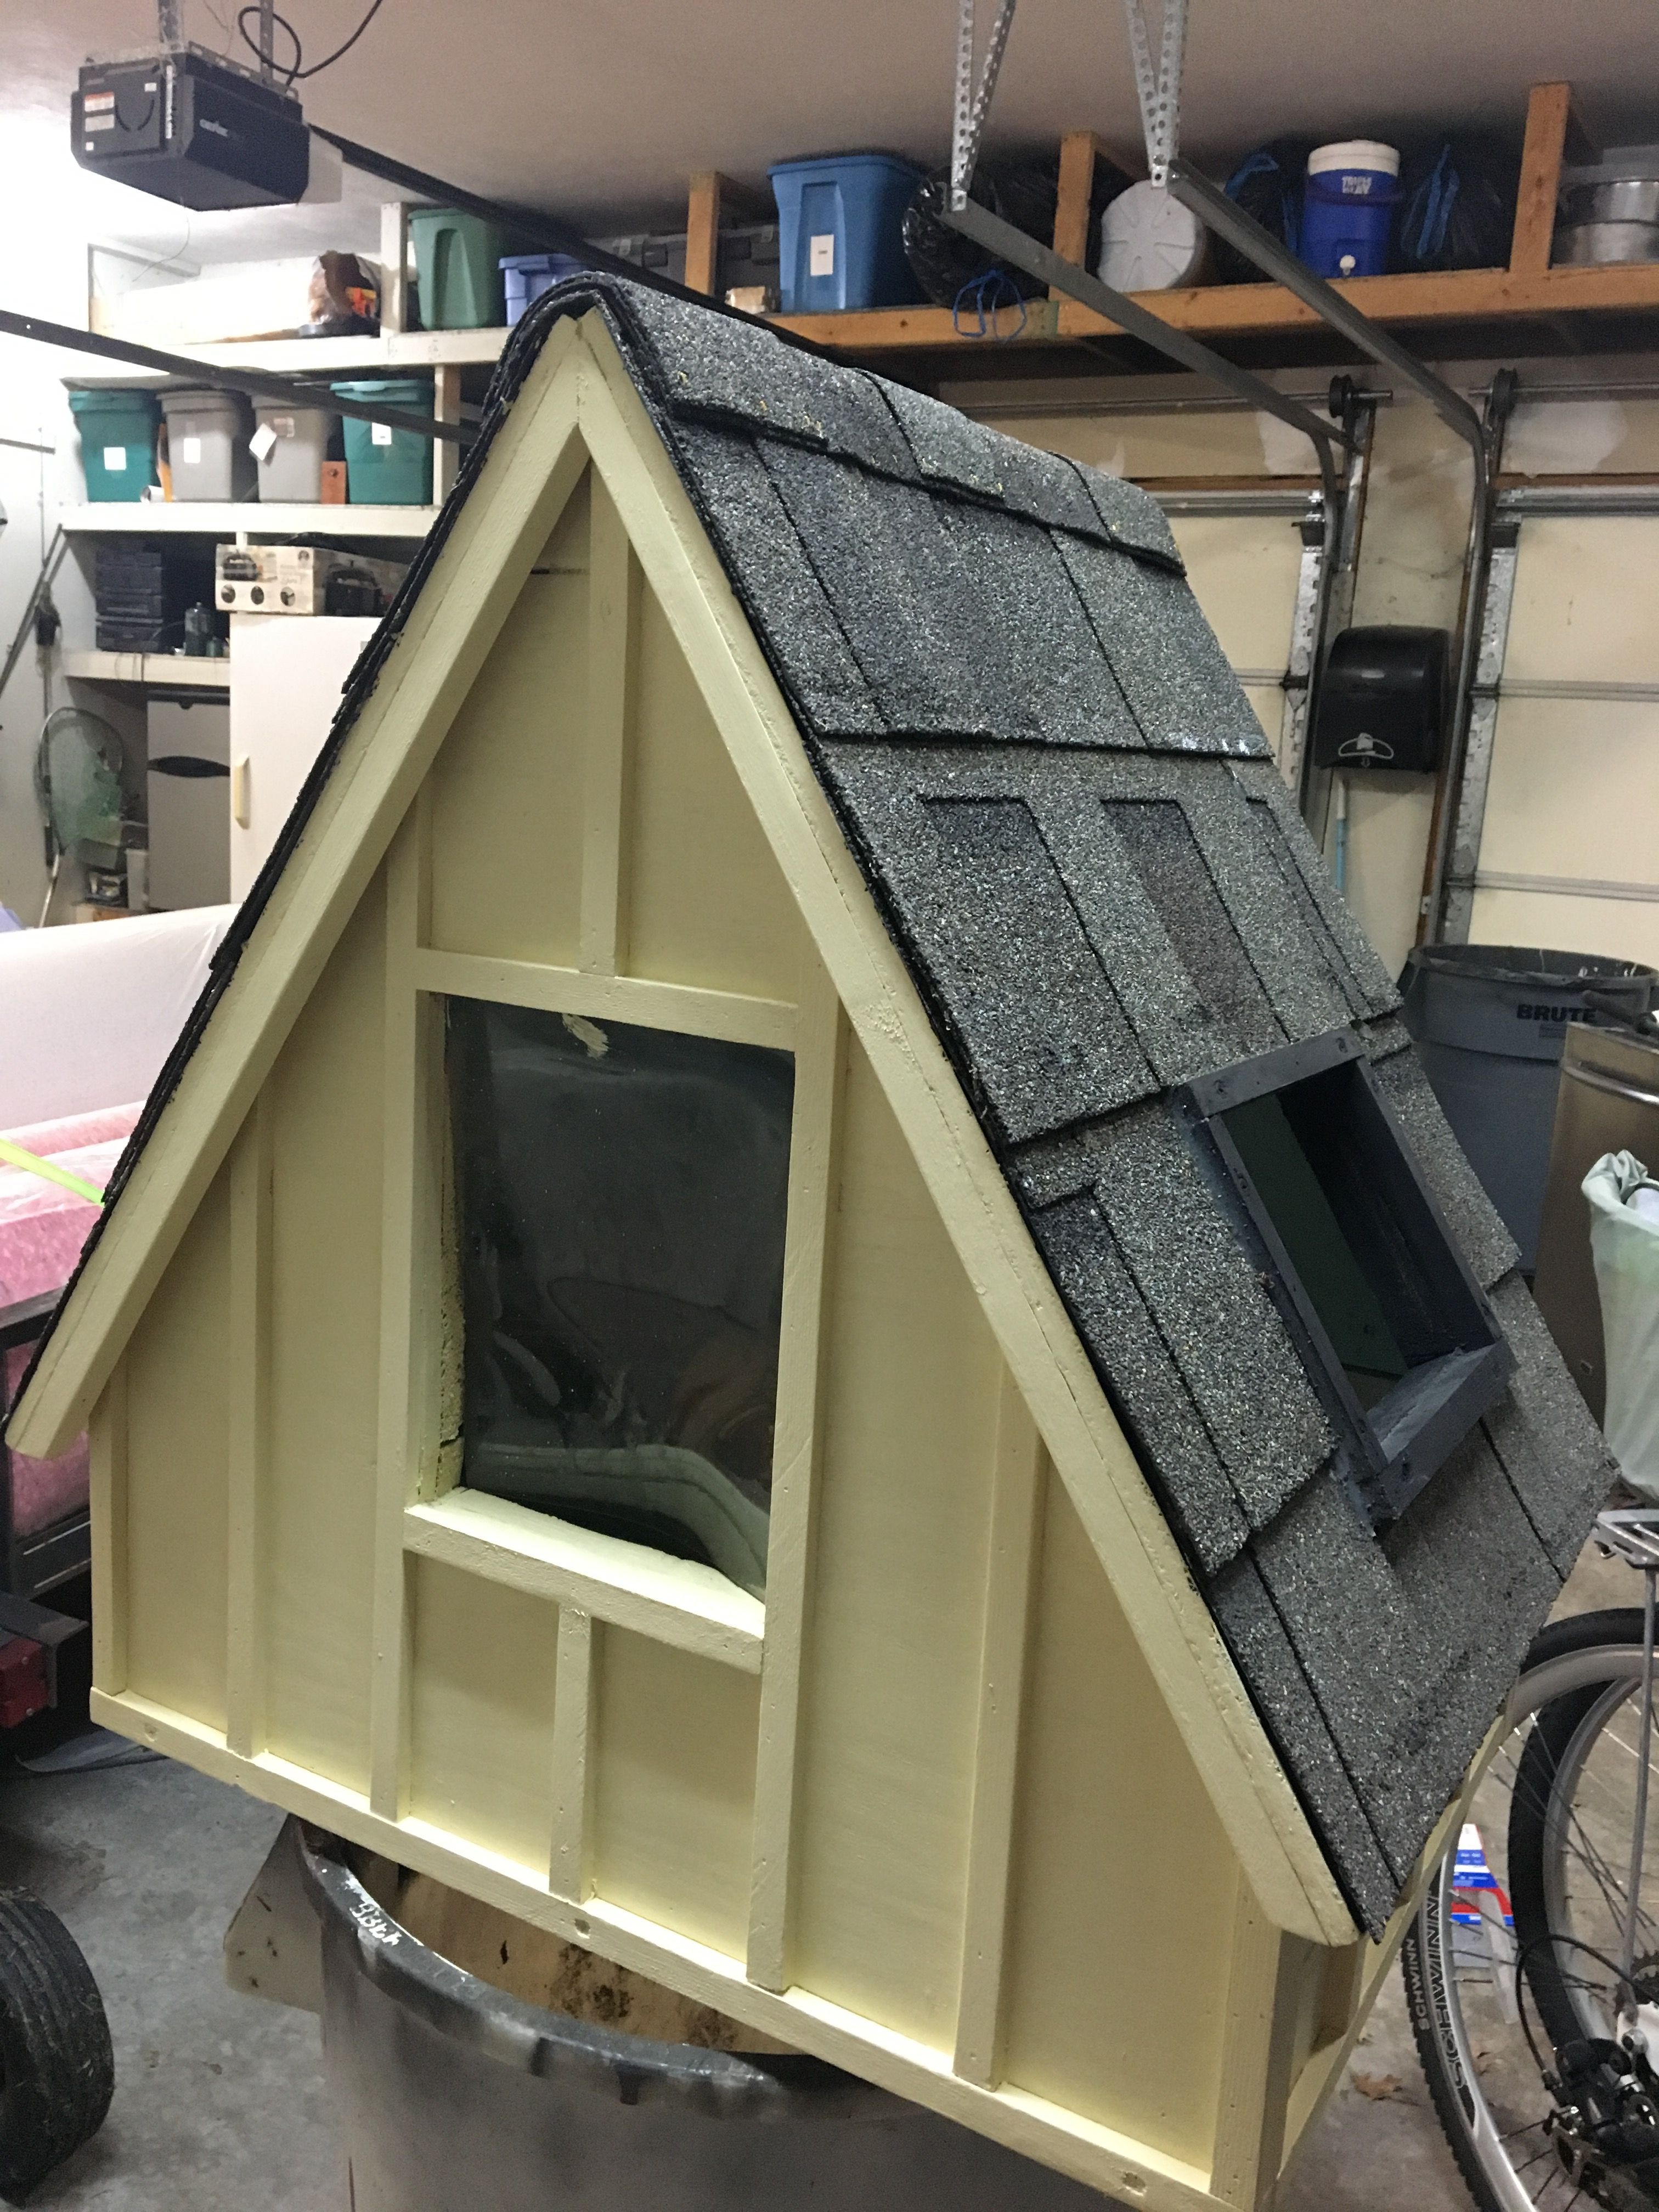 Outdoor Cat House Insulated For Cold Weather Garden And Outdoor Ideas Outdoor Cats Cats